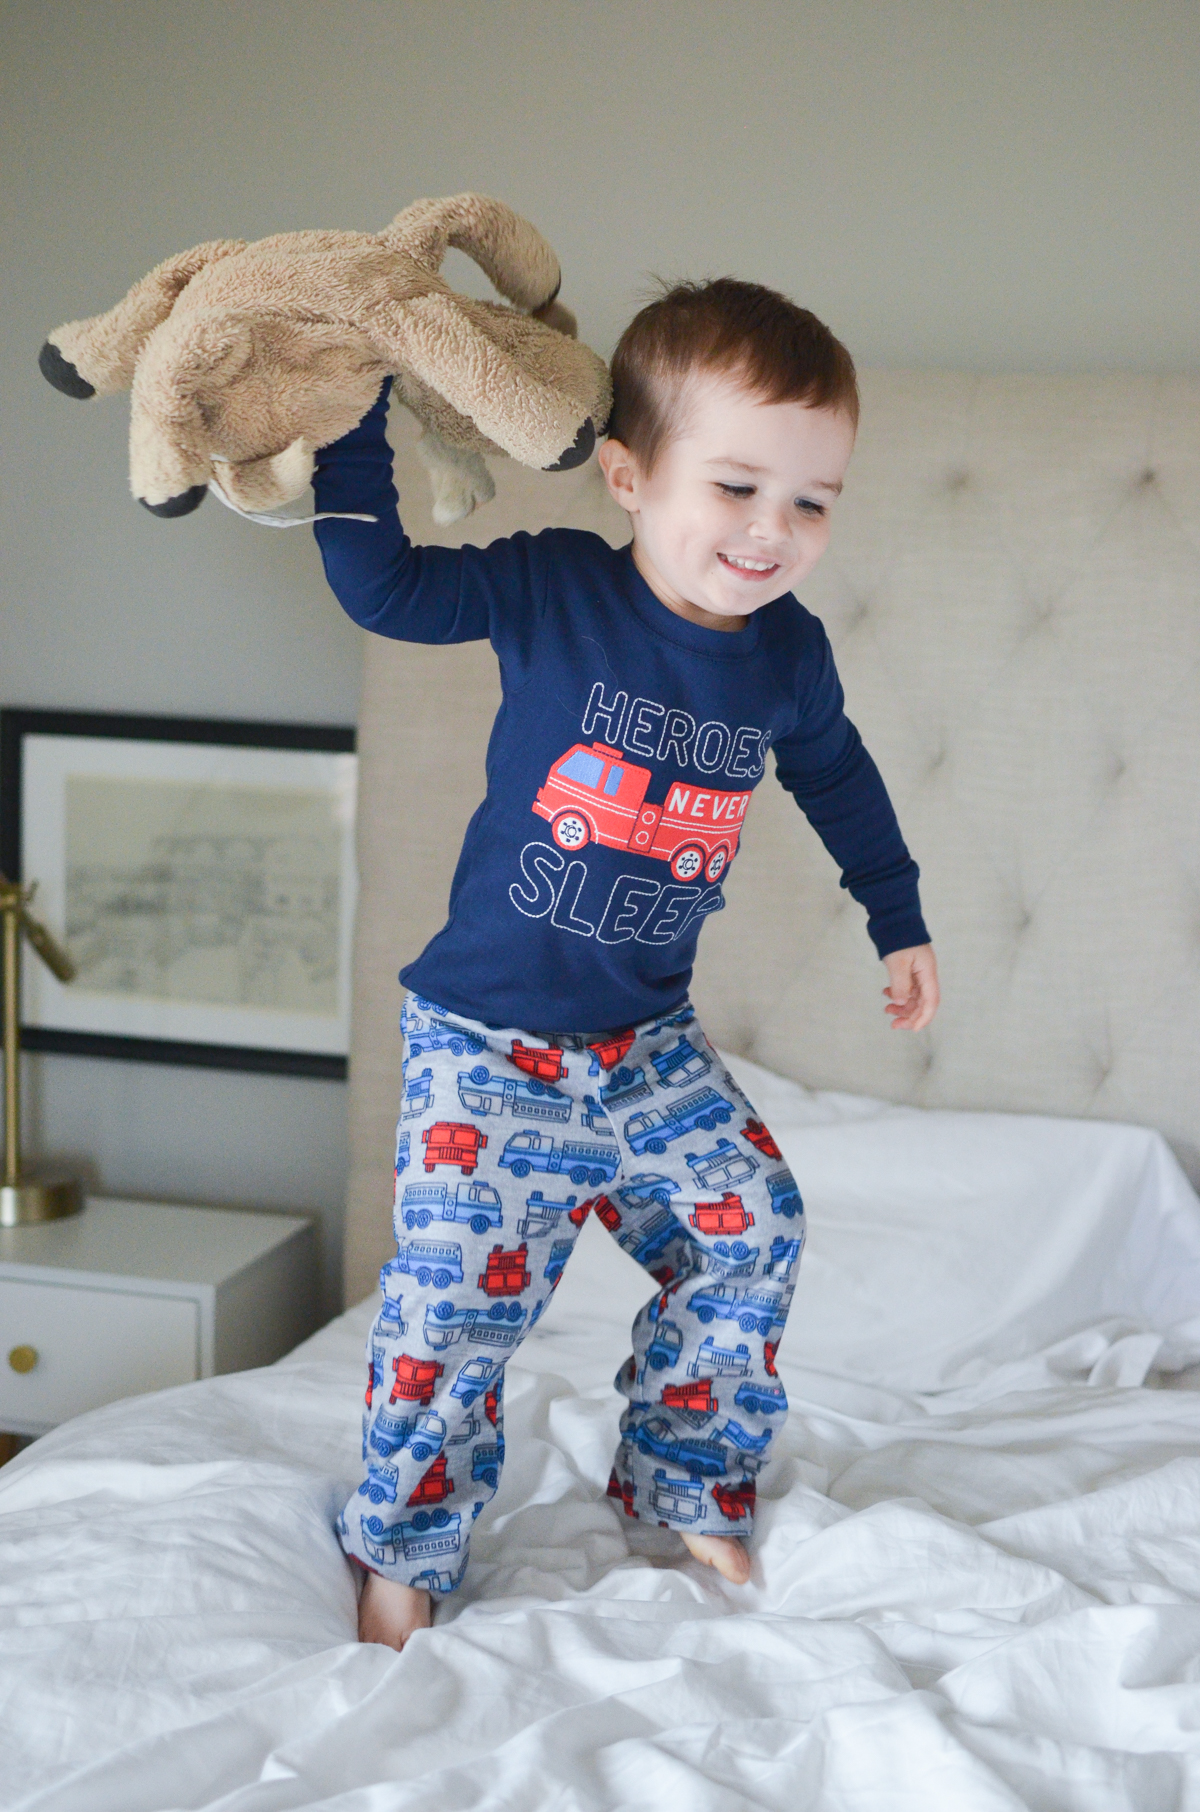 bedtime routine tips for toddlers and babies